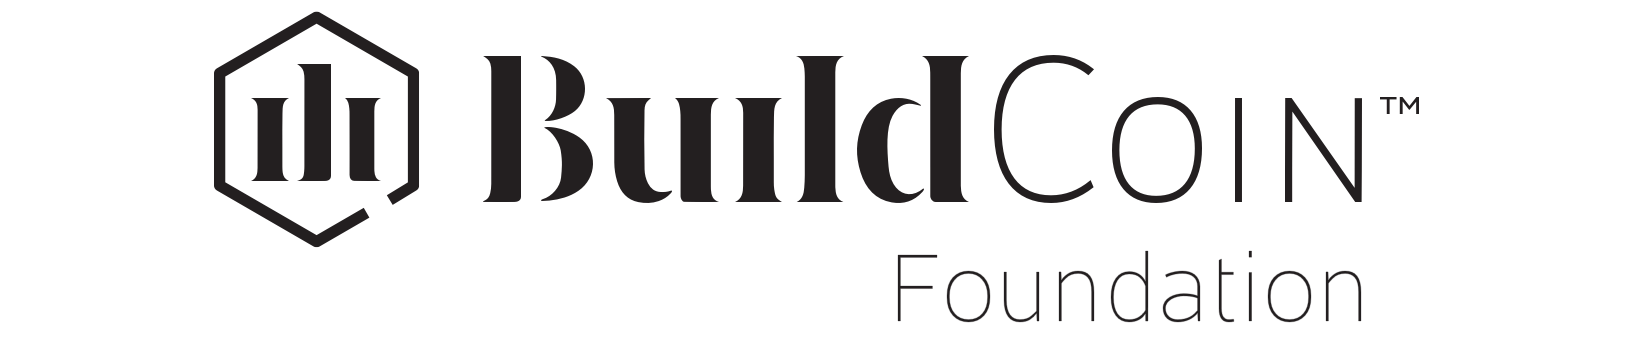 BuildCoinFoundation_logo1641x337 (6).png